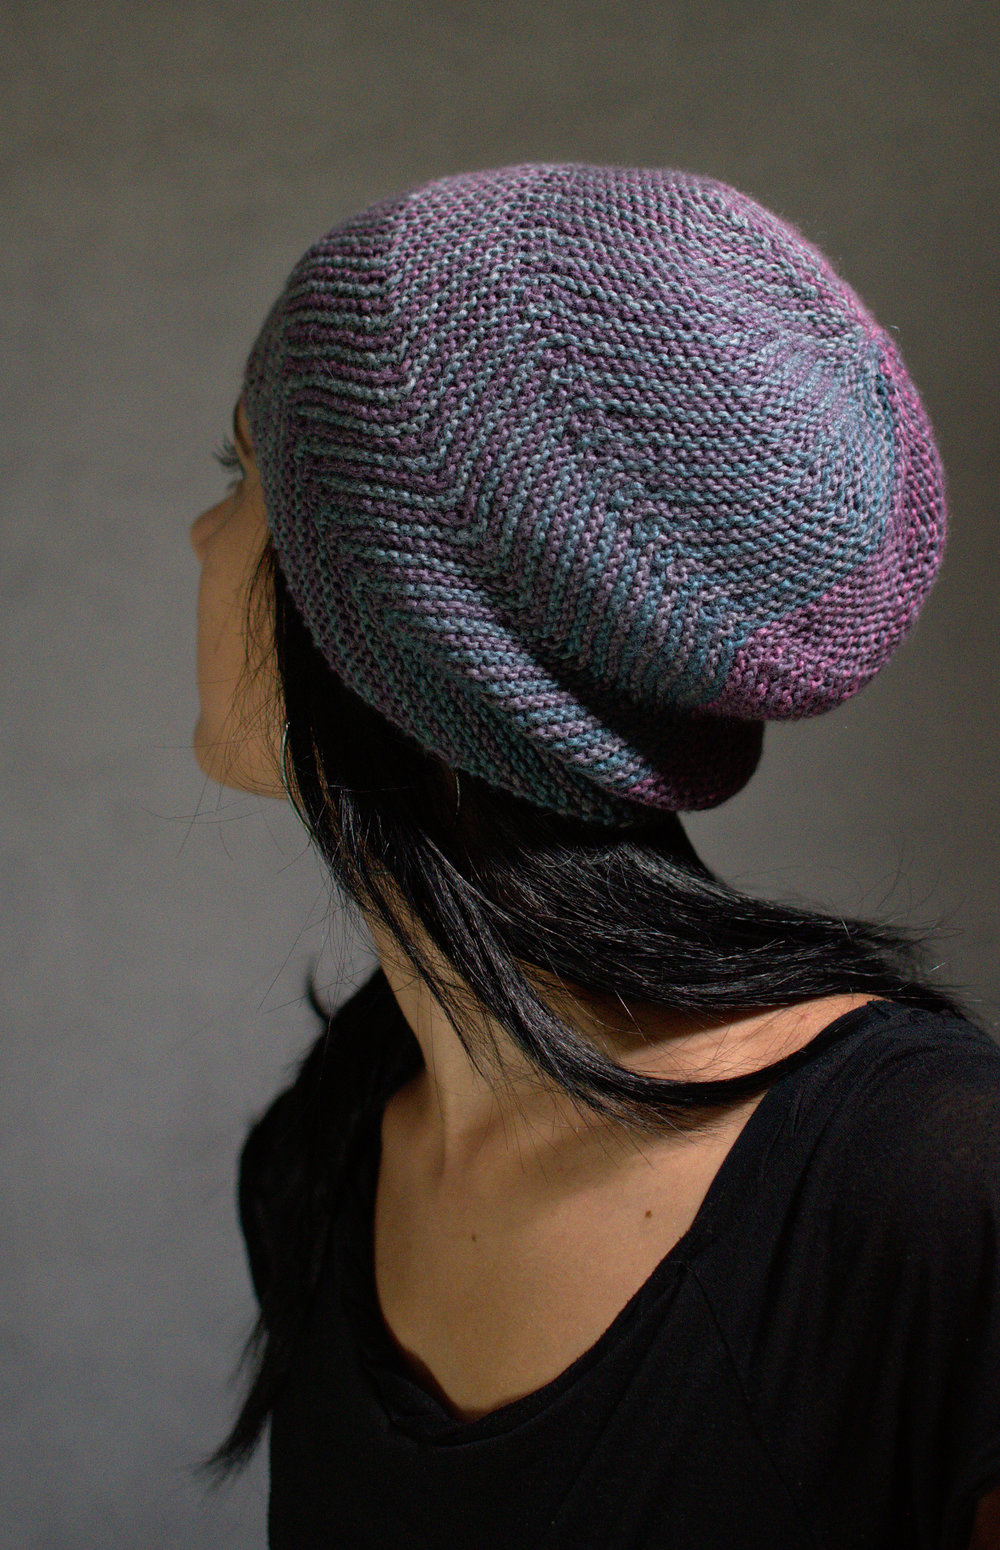 Juxta sideways knit gradient striped Hat hand knitting pattern